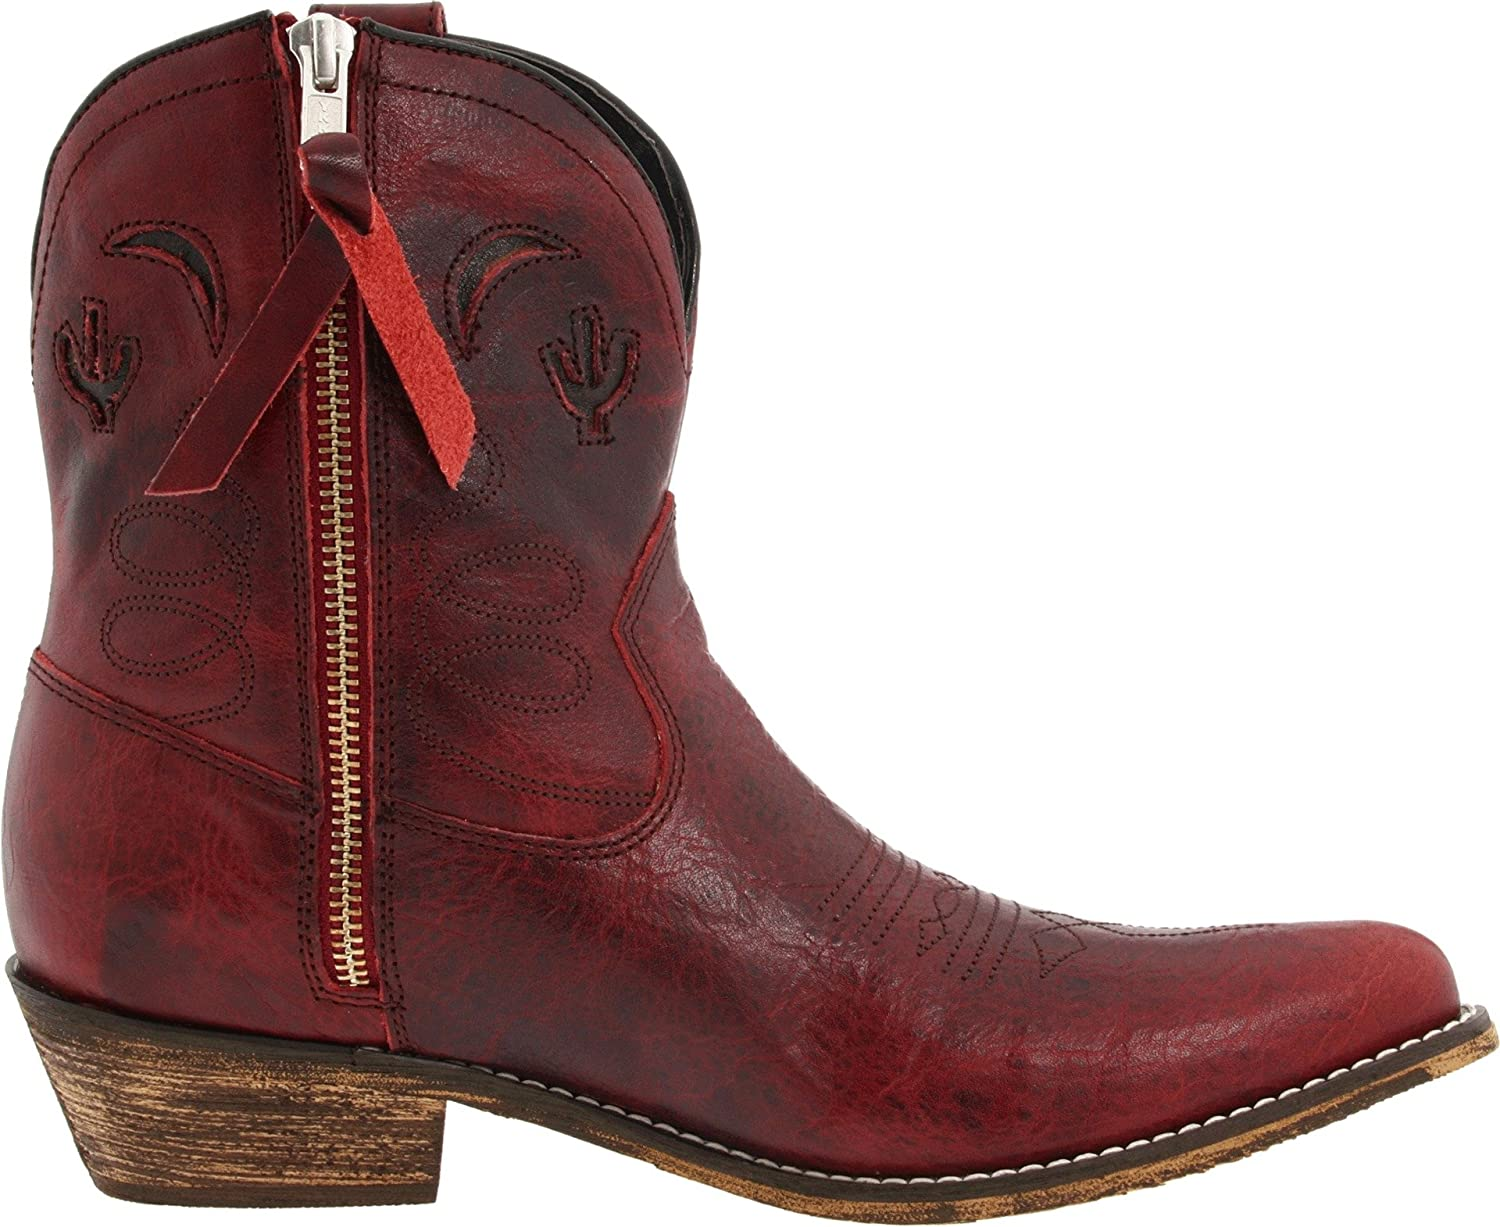 Dingo Women's Adobe Rose Leather Boots B004305G7K 9.5 M US|Red Distressed